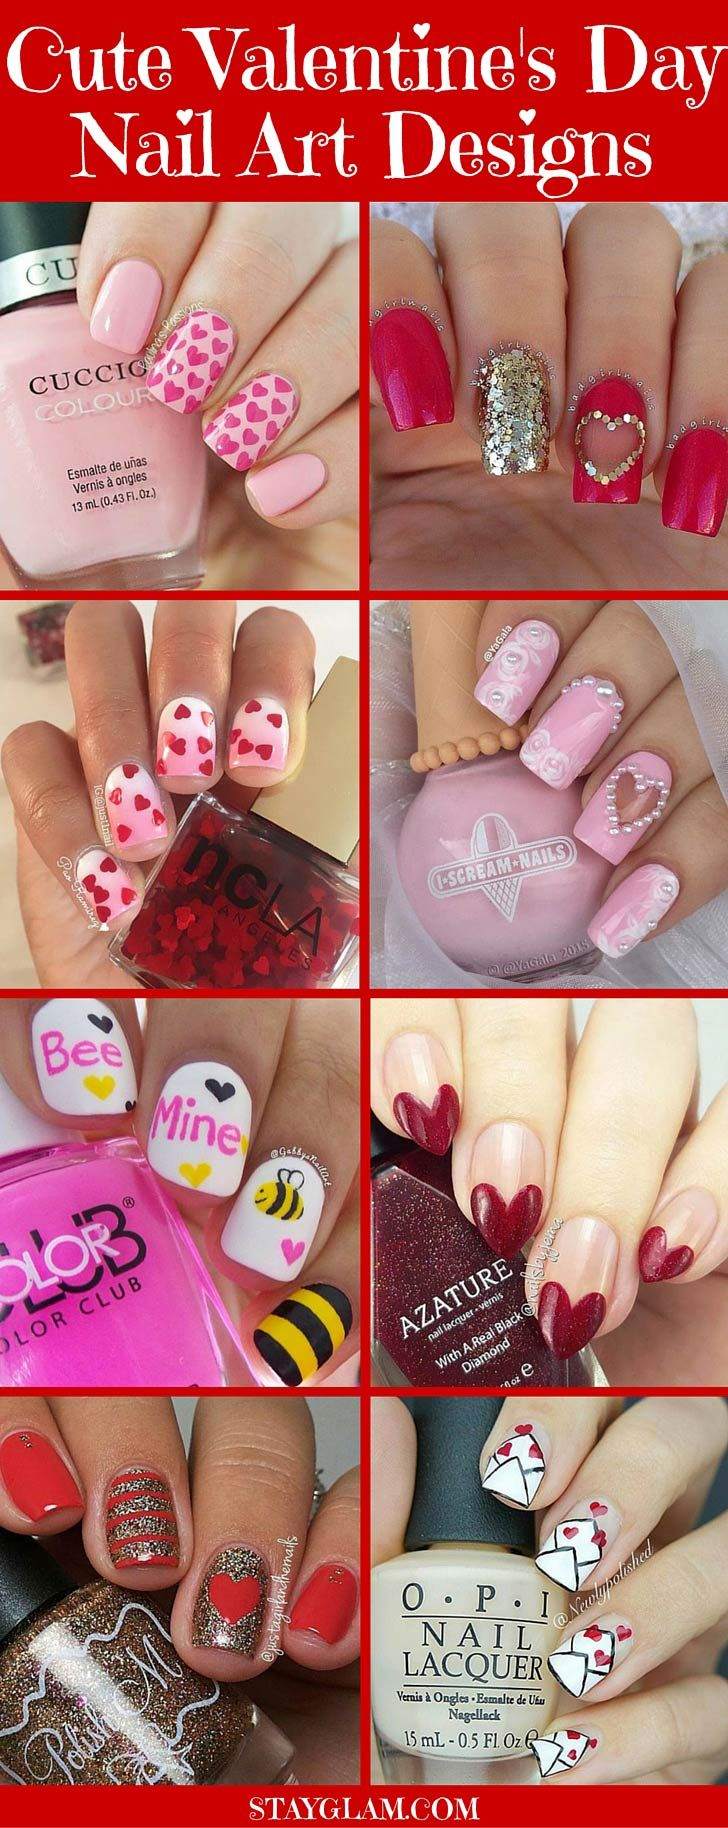 393 best nails images on Pinterest | Make up looks, Nail scissors ...